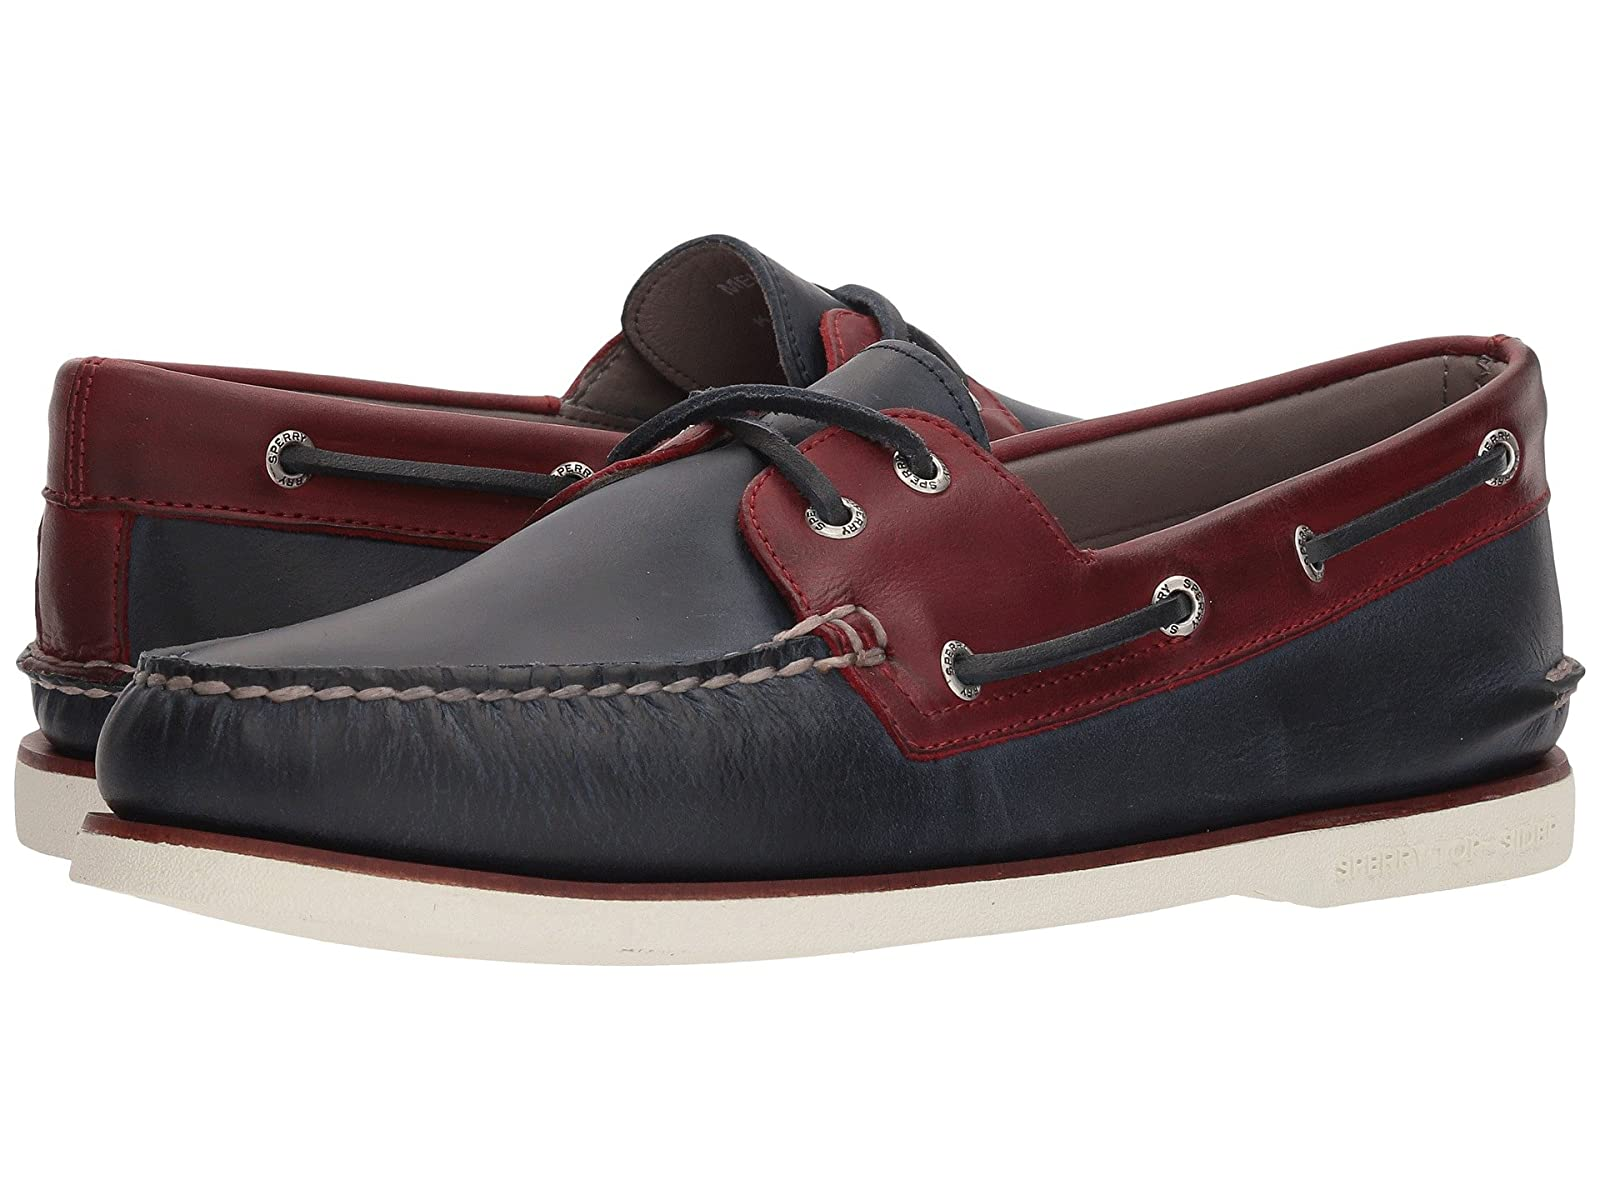 Sperry Gold A/O 2-Eye RoustaboutSelling fashionable and eye-catching shoes